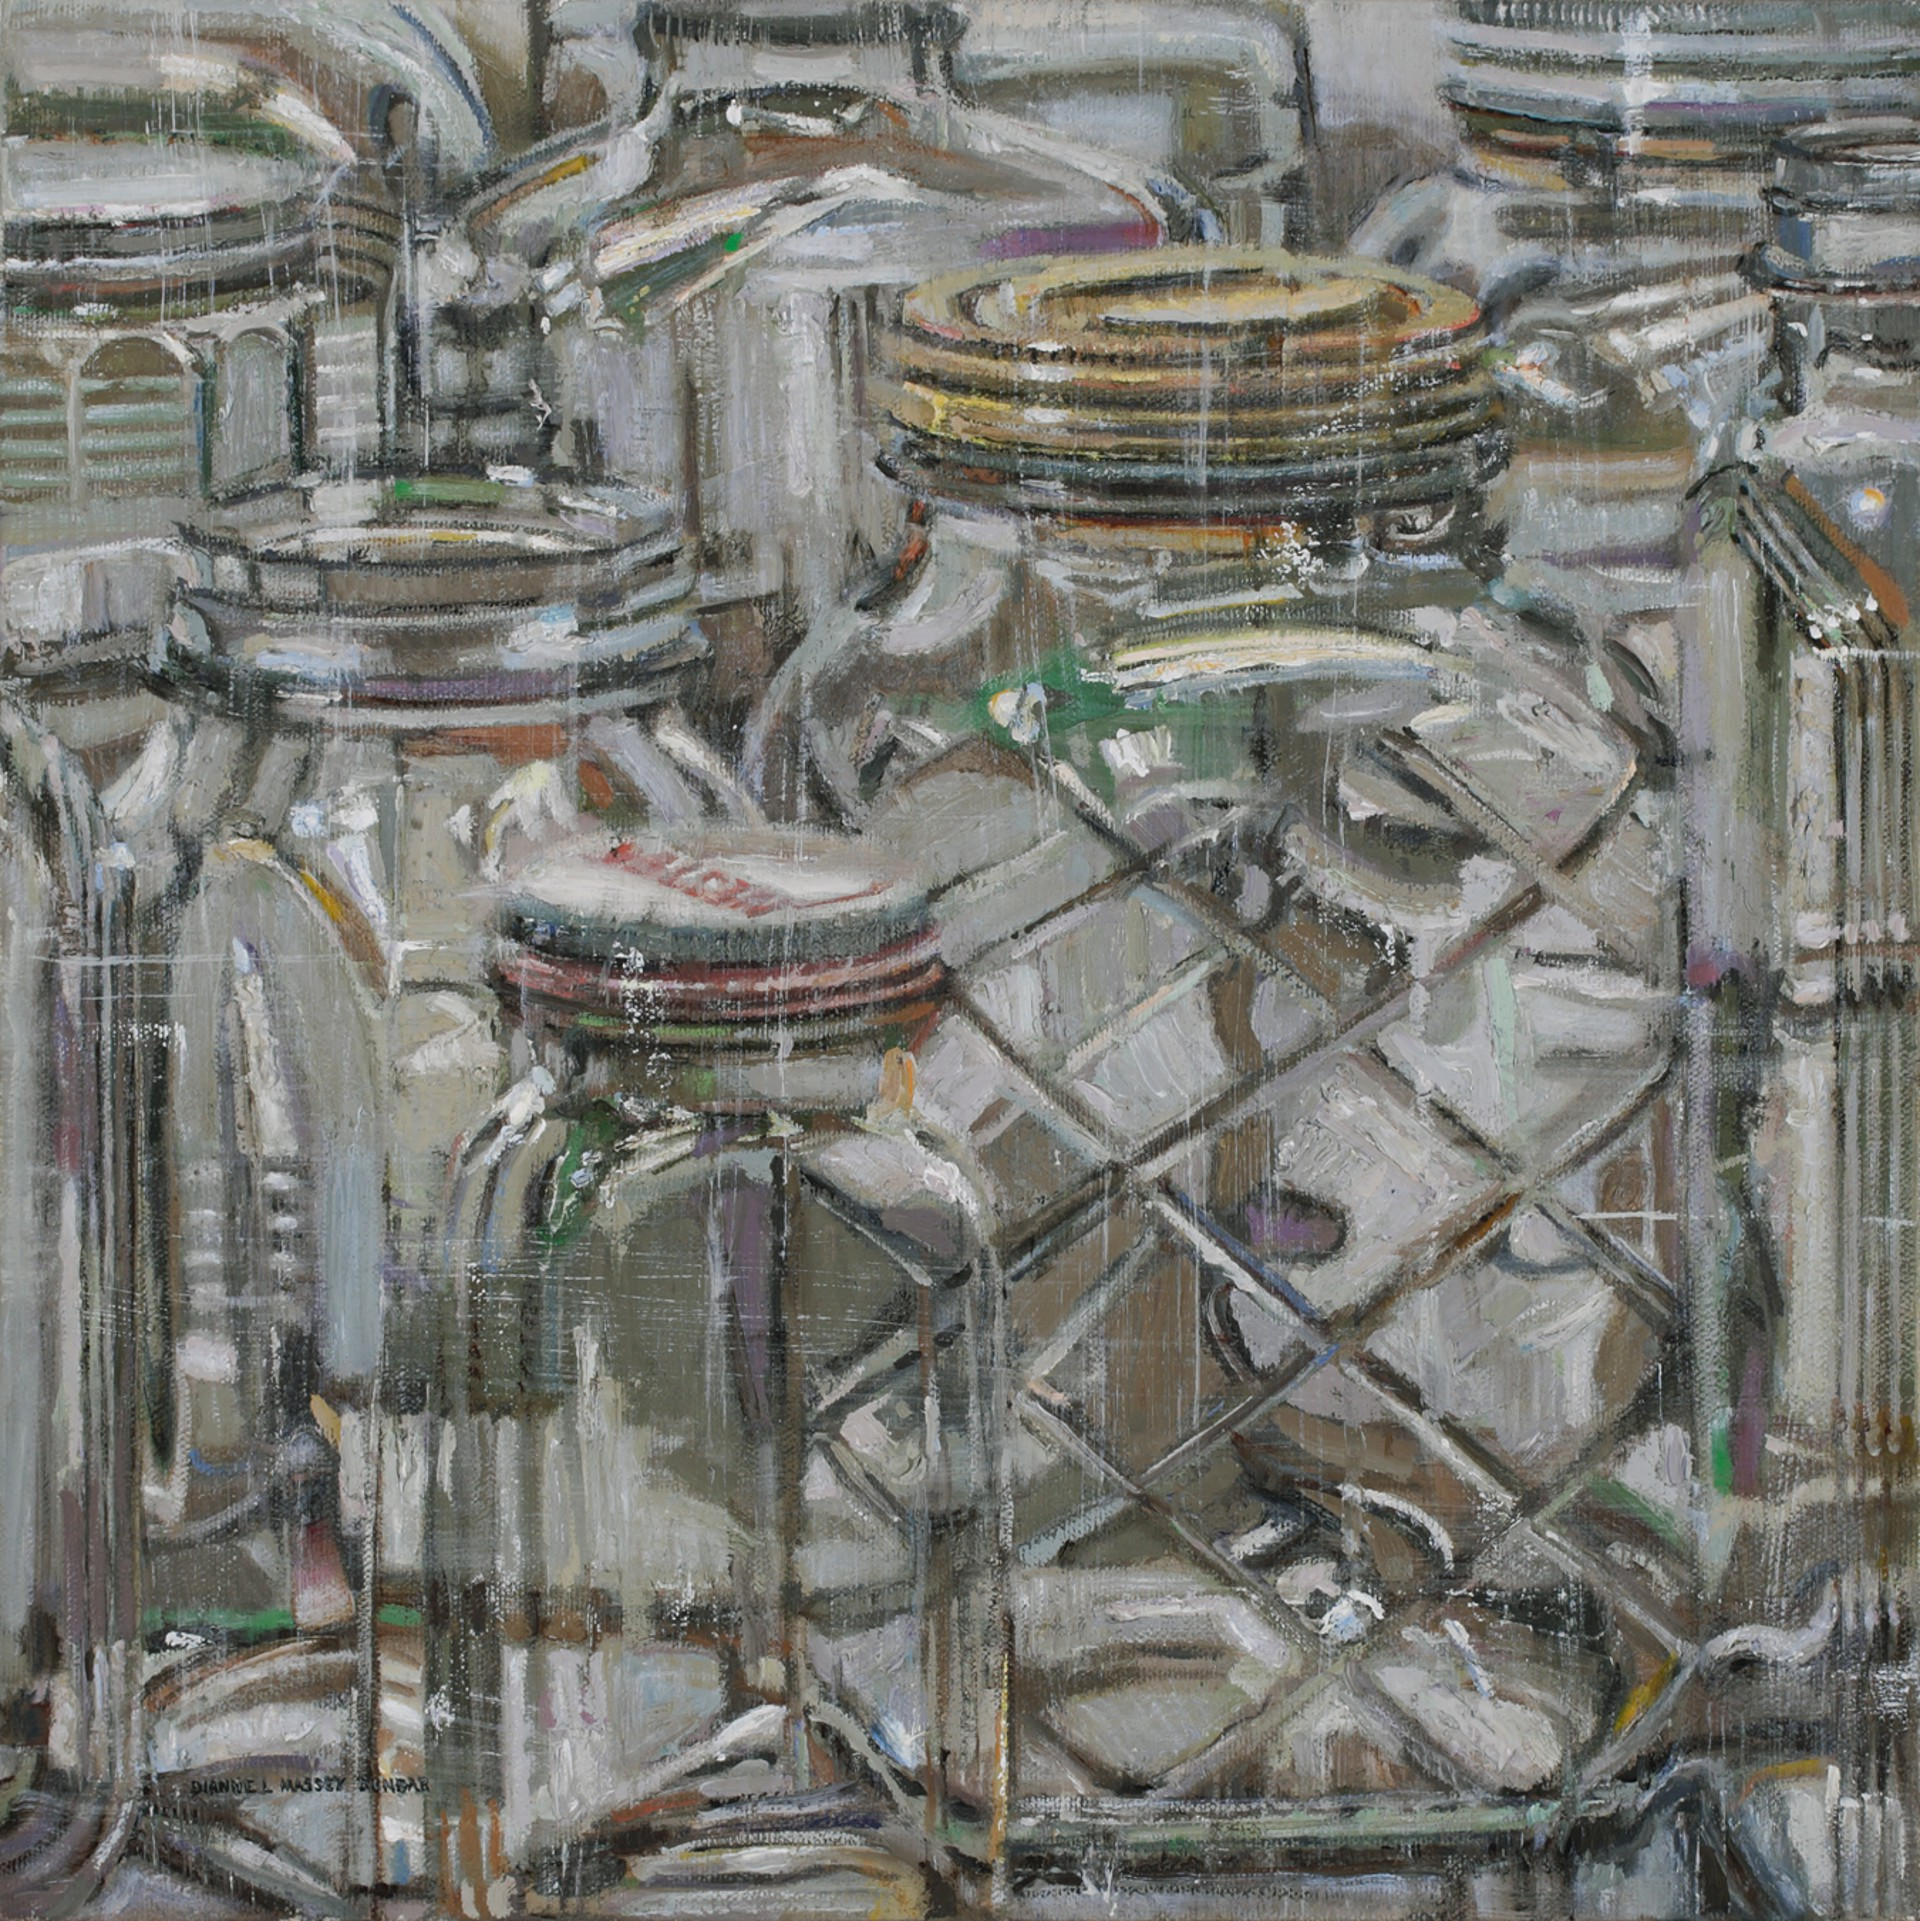 And More Jars by Dianne L Massey Dunbar